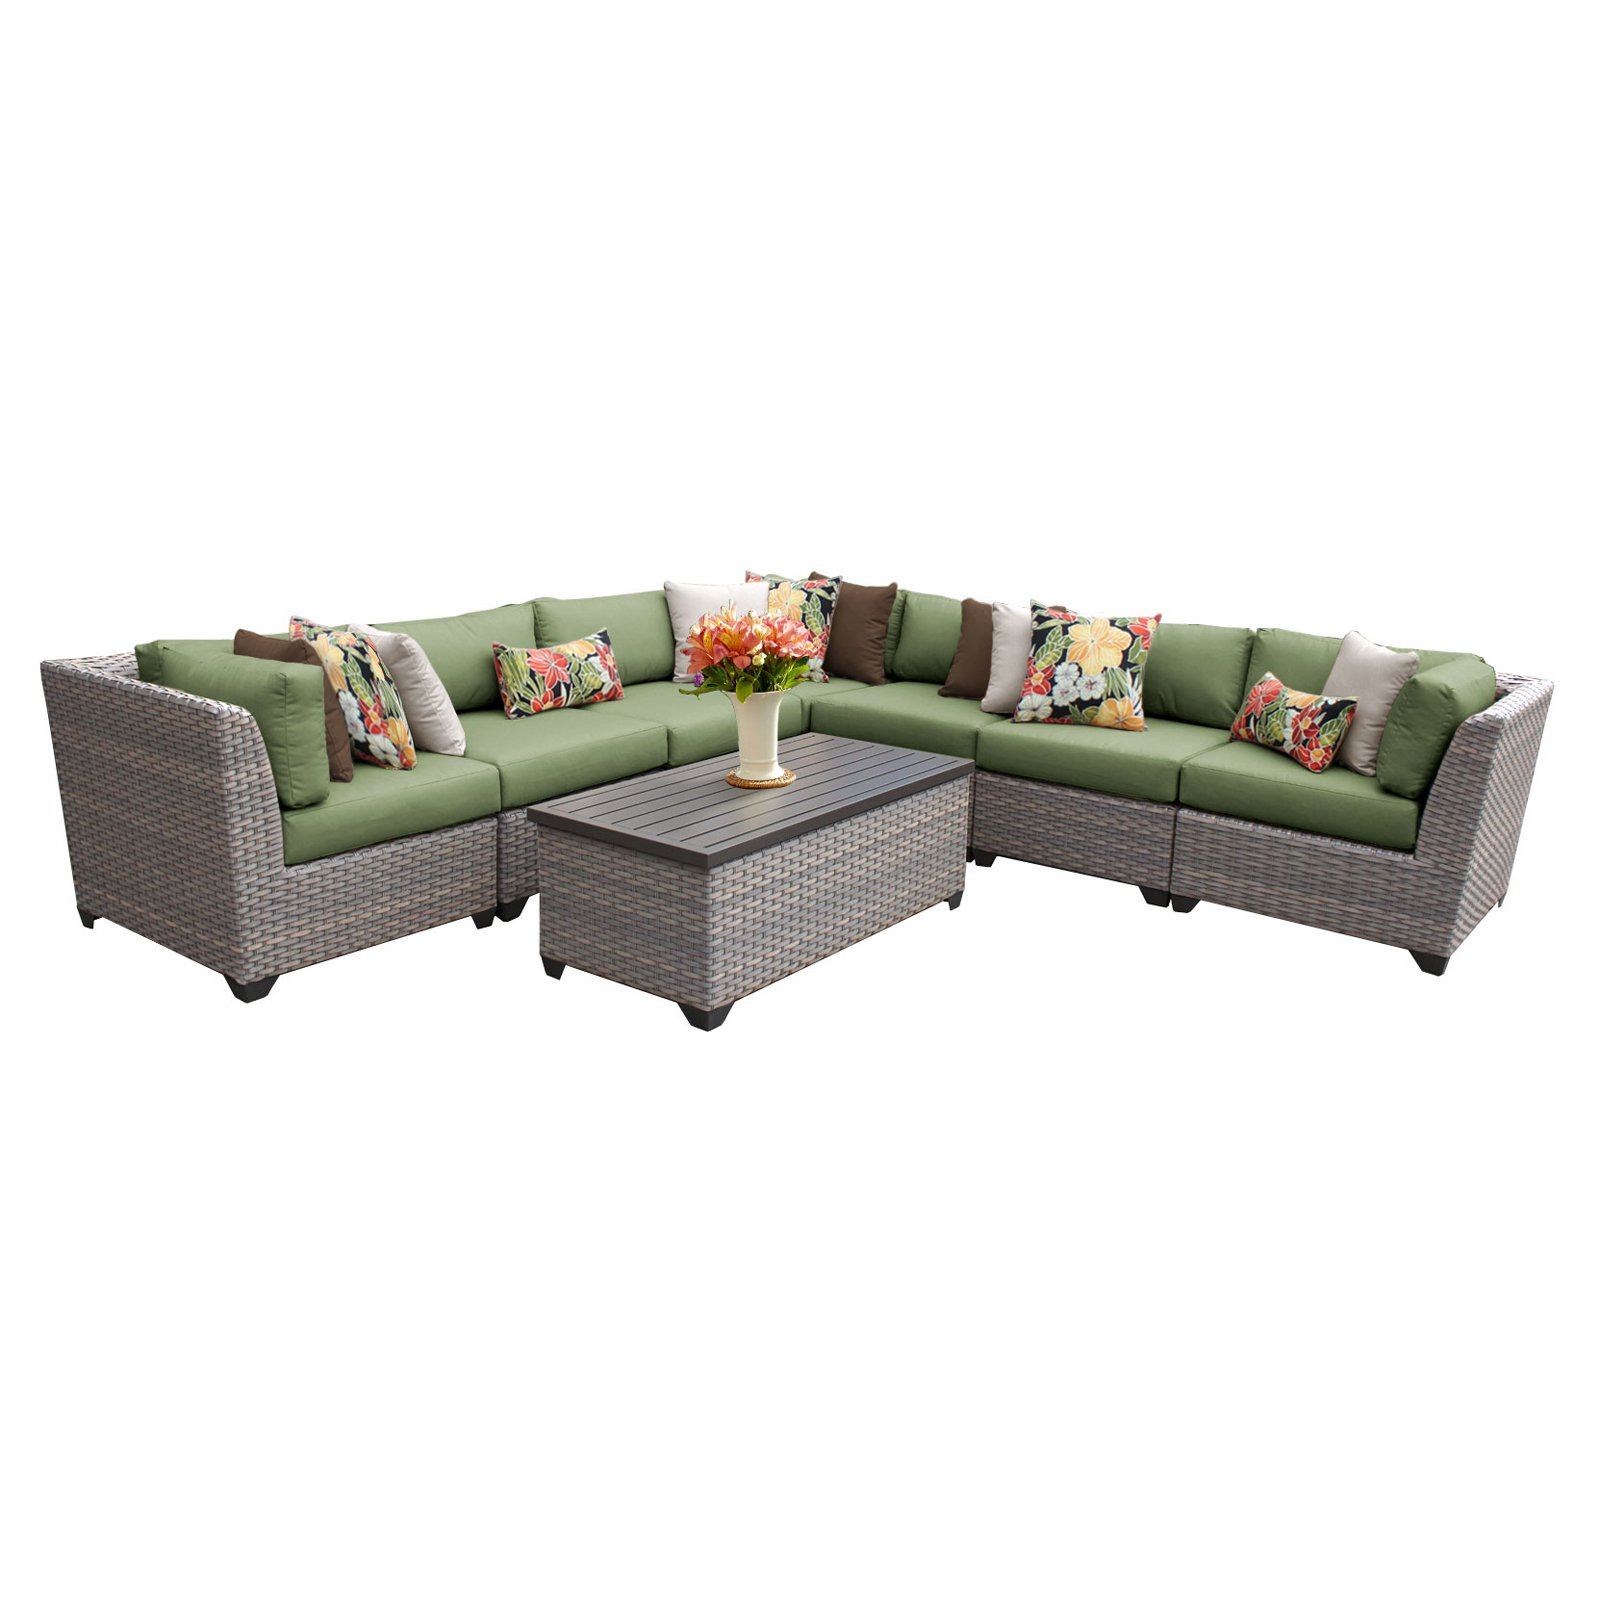 TK Classics Florence Wicker 8 Piece Patio Conversation Set with 2 Sets of Cushion Covers by Delacora